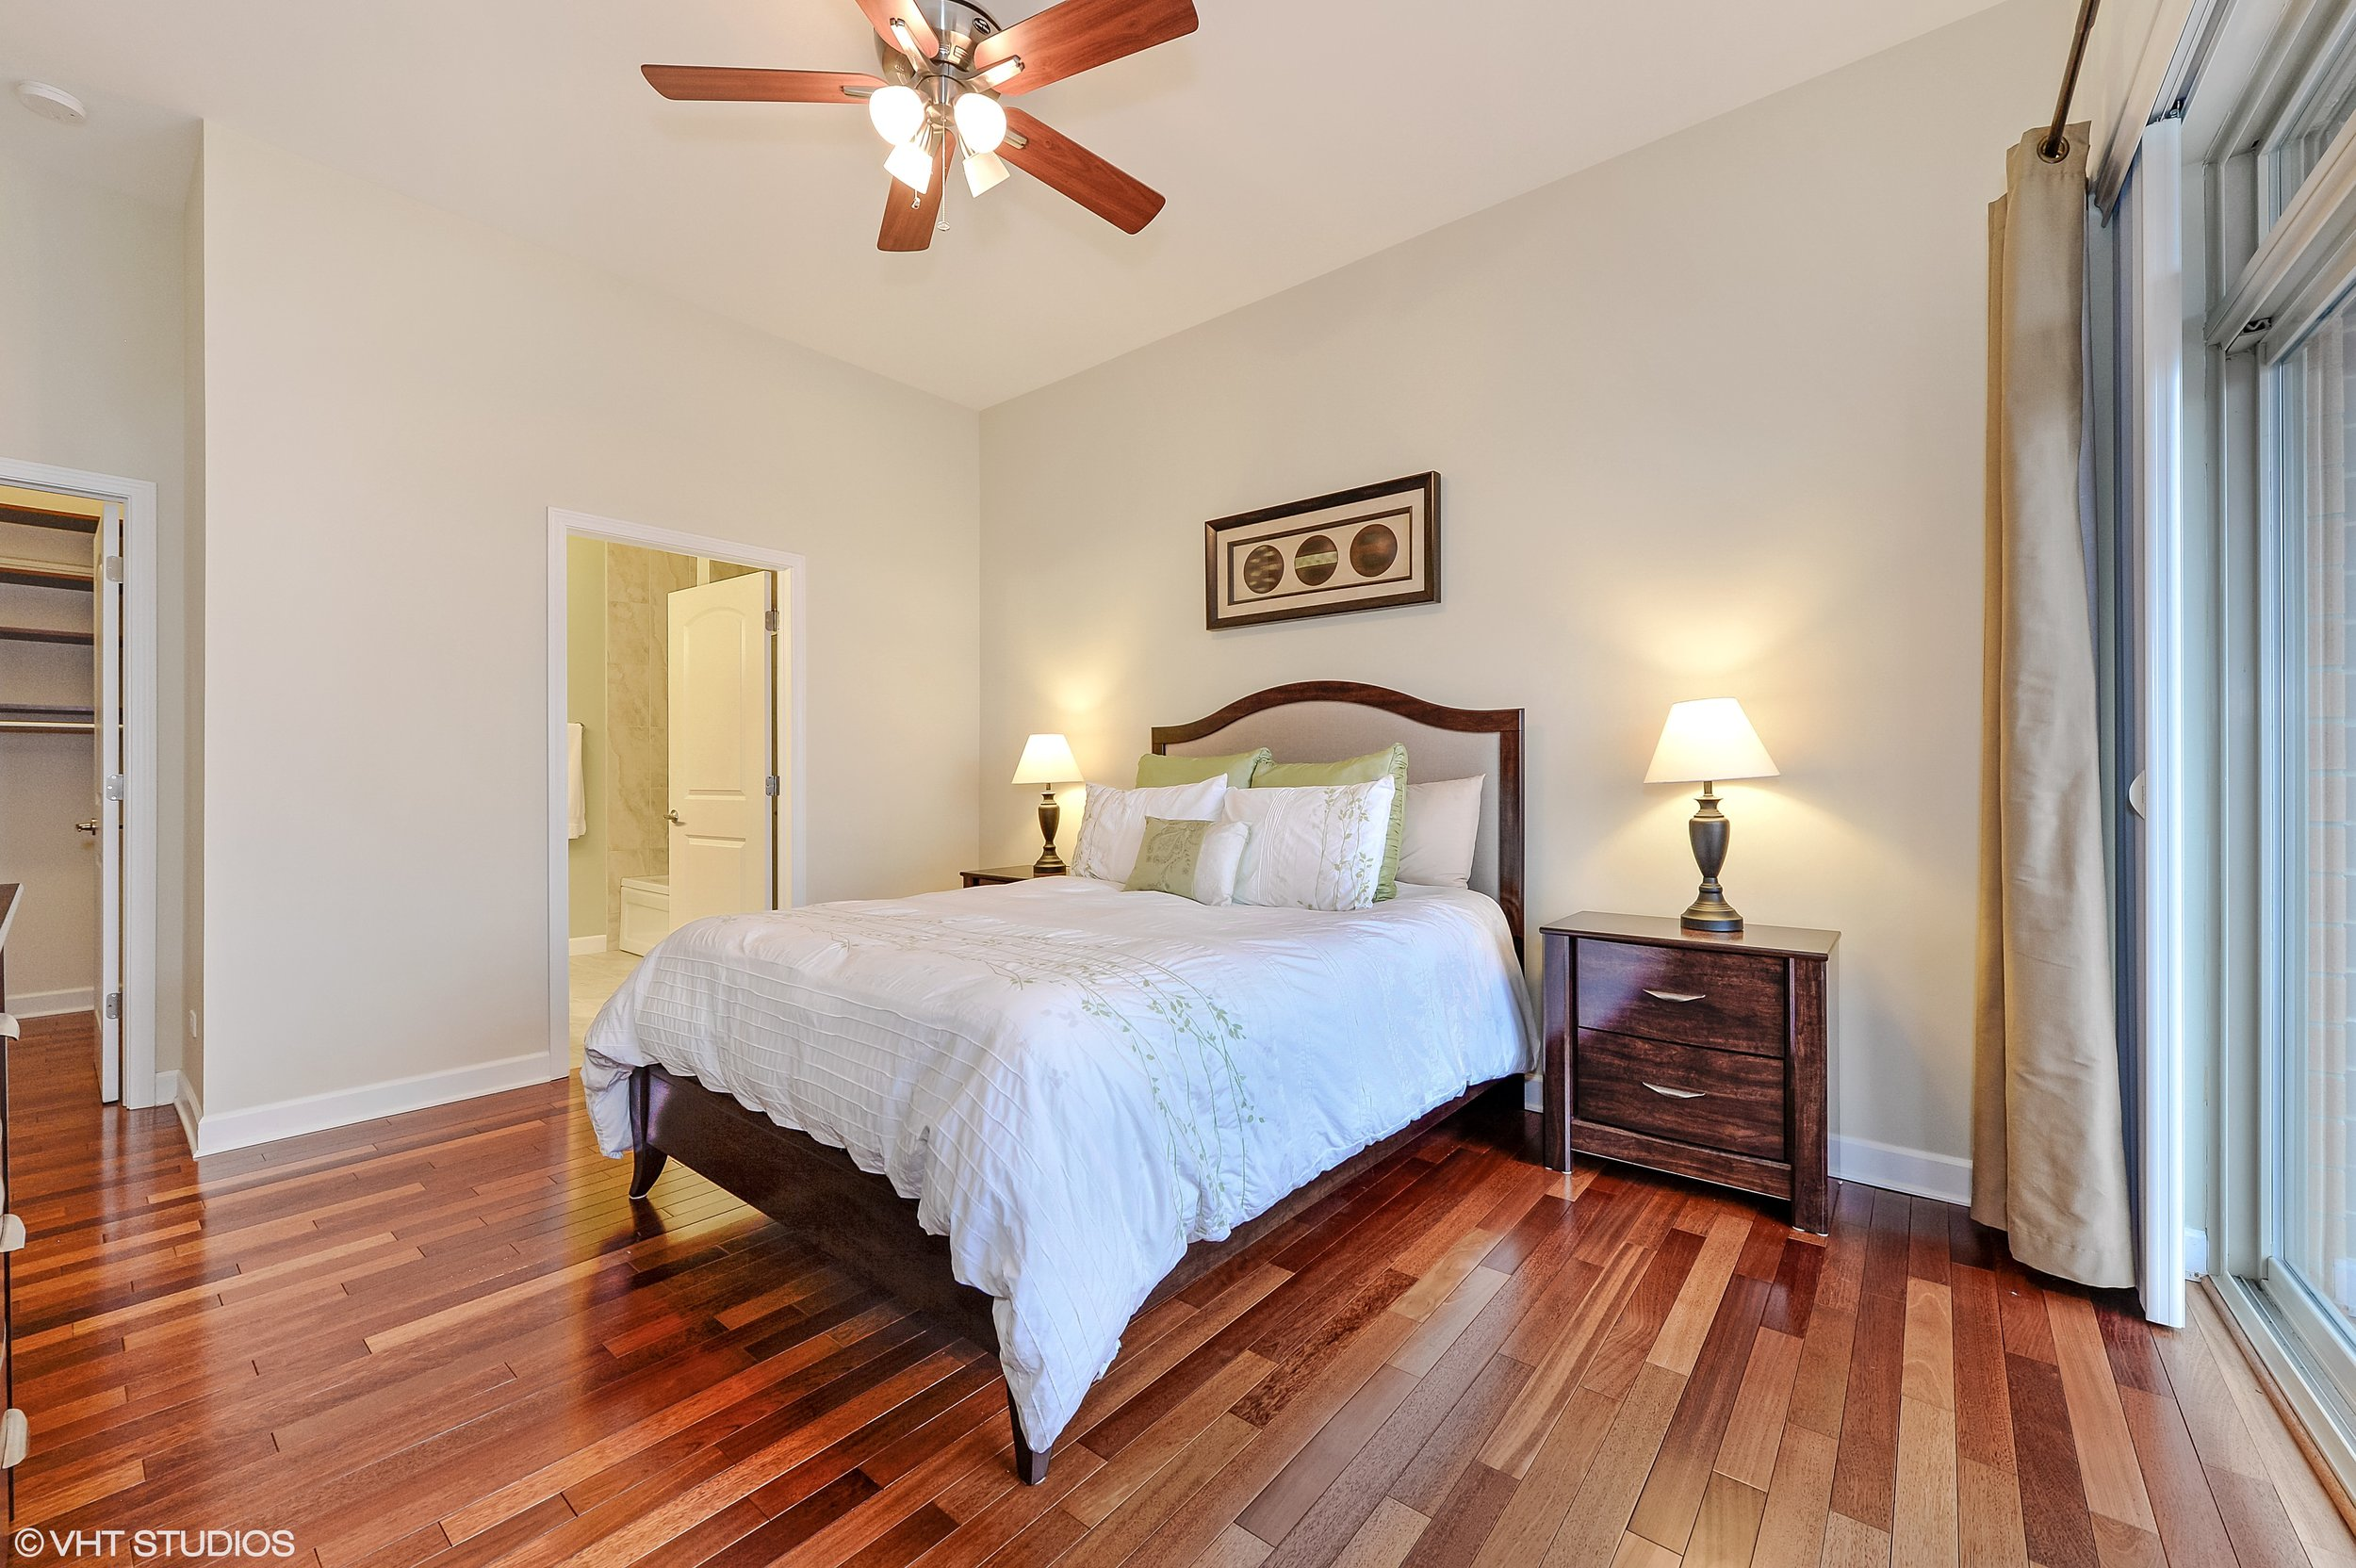 09_5067NorthLincolnAve_302_178_MasterBedroom_HiRes.jpg